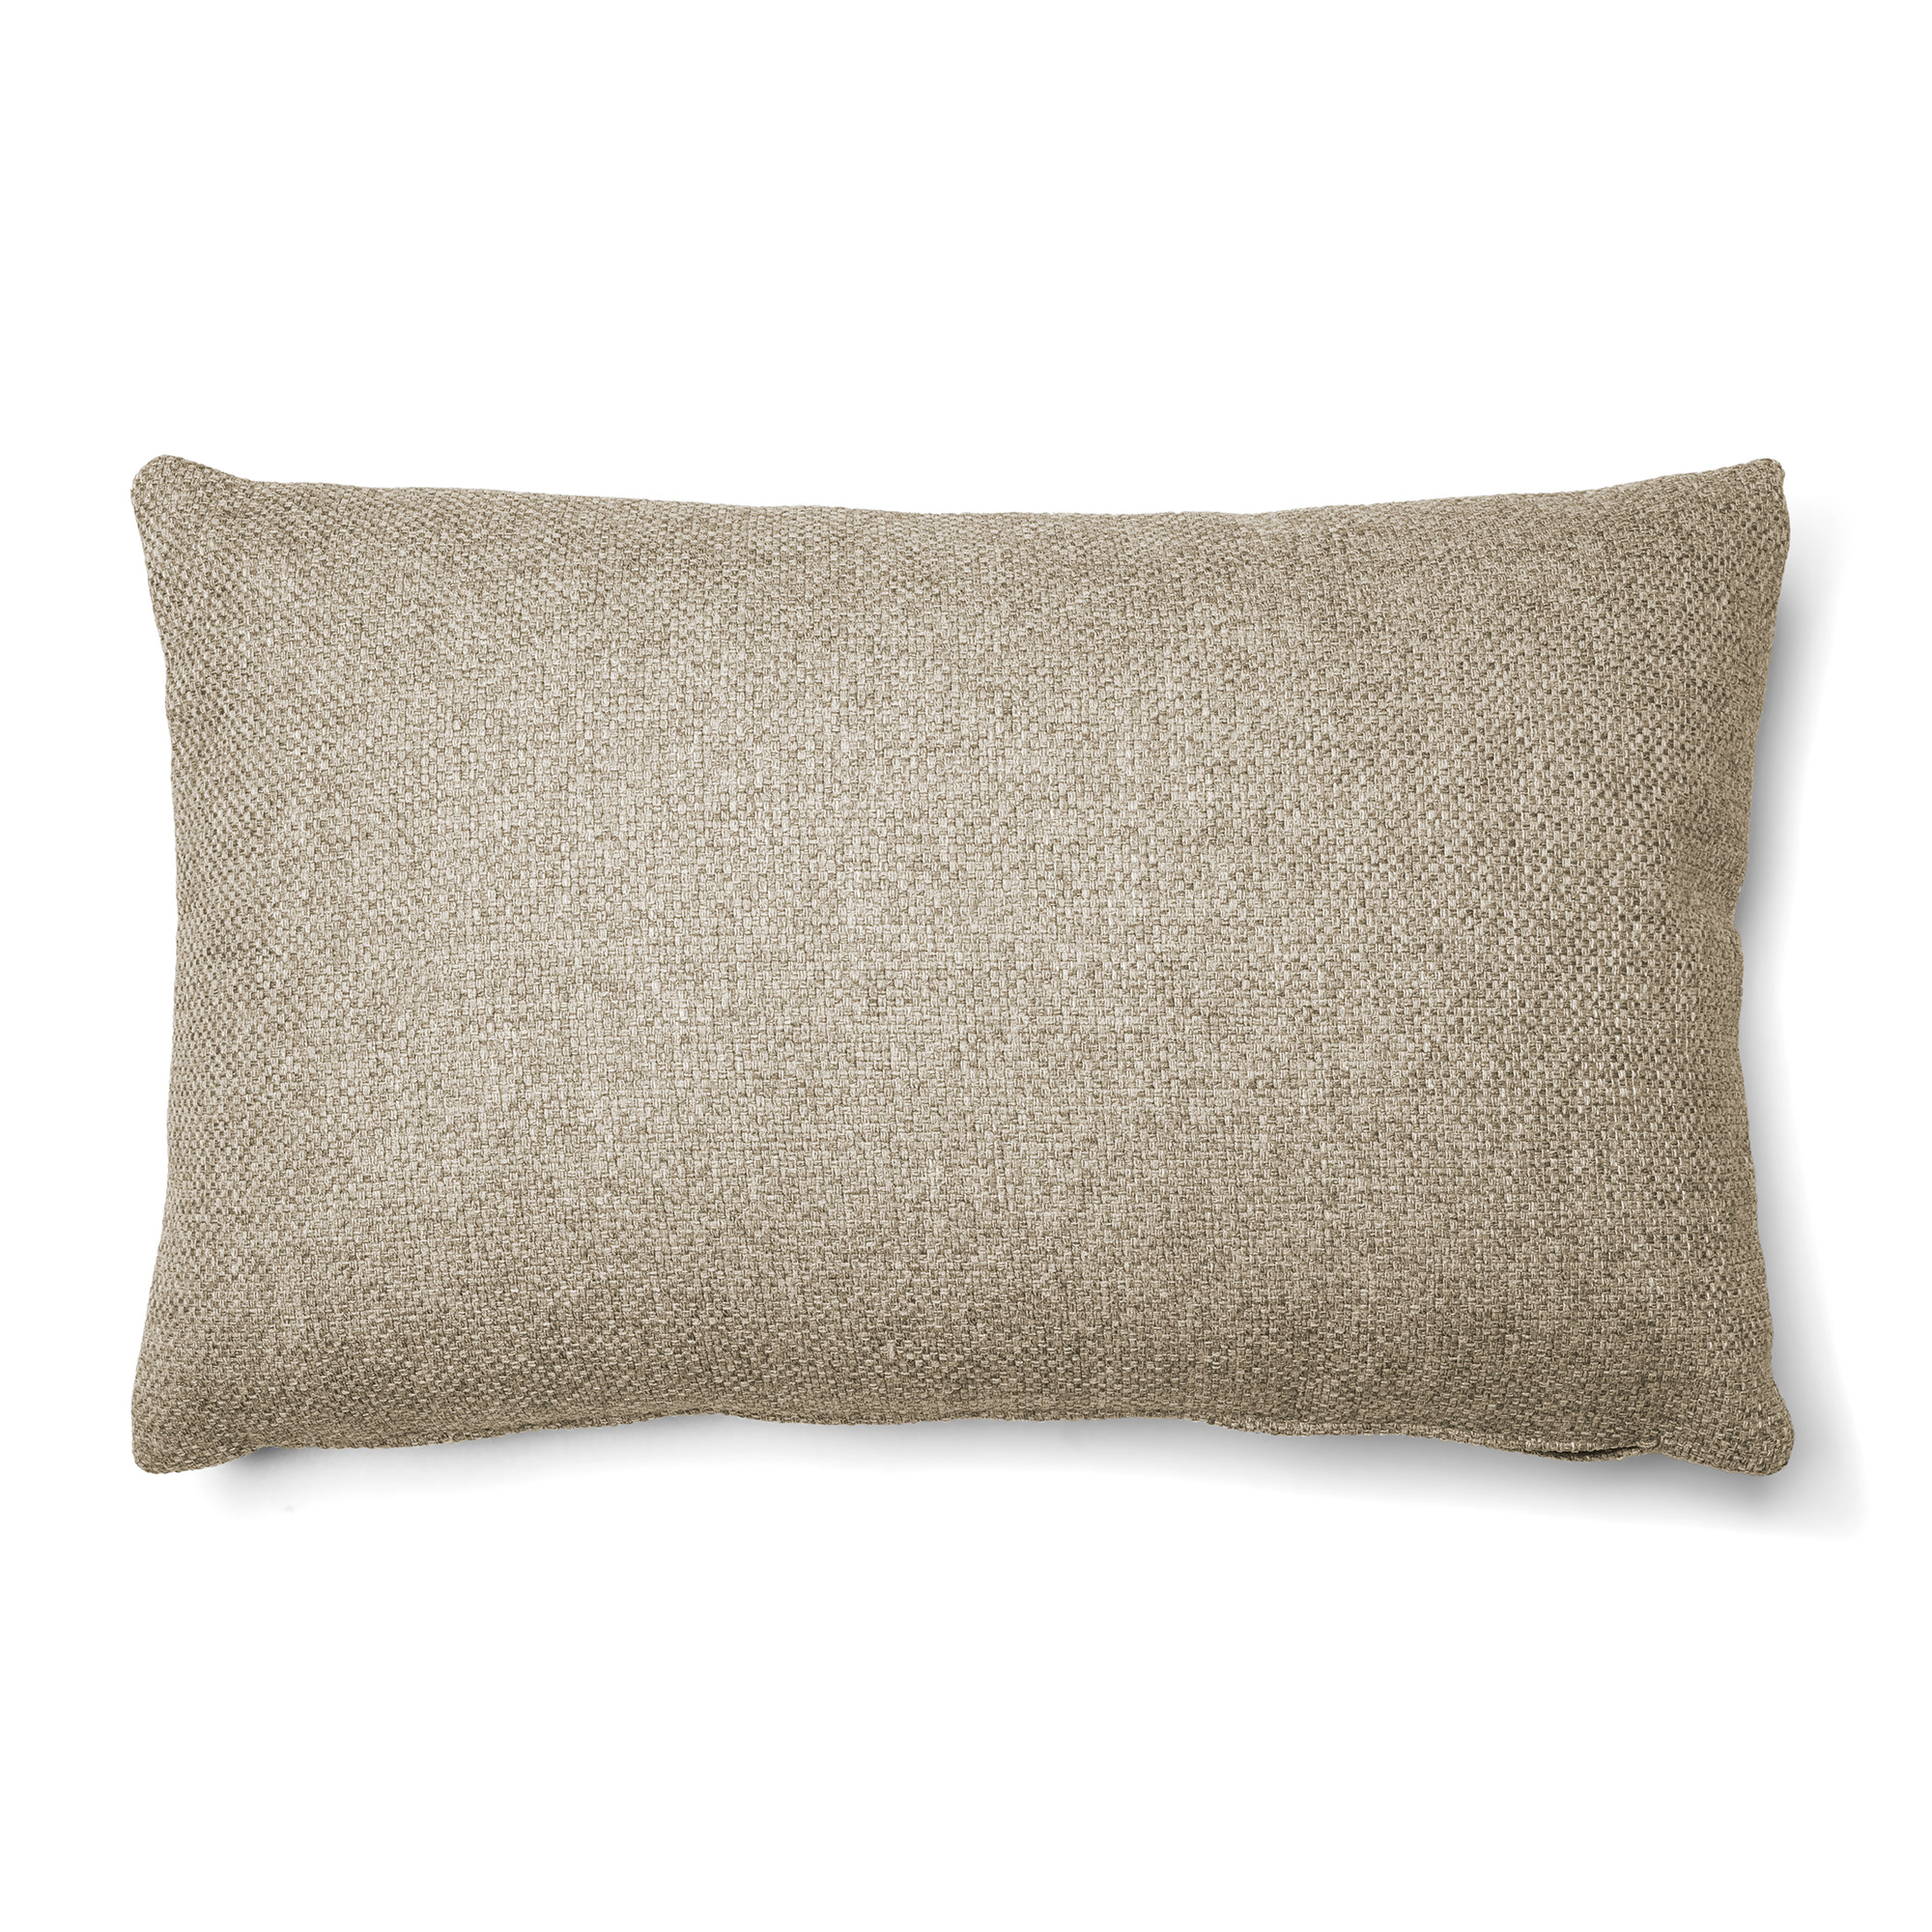 Kave home - coussin kam 30 cm chrono beige1